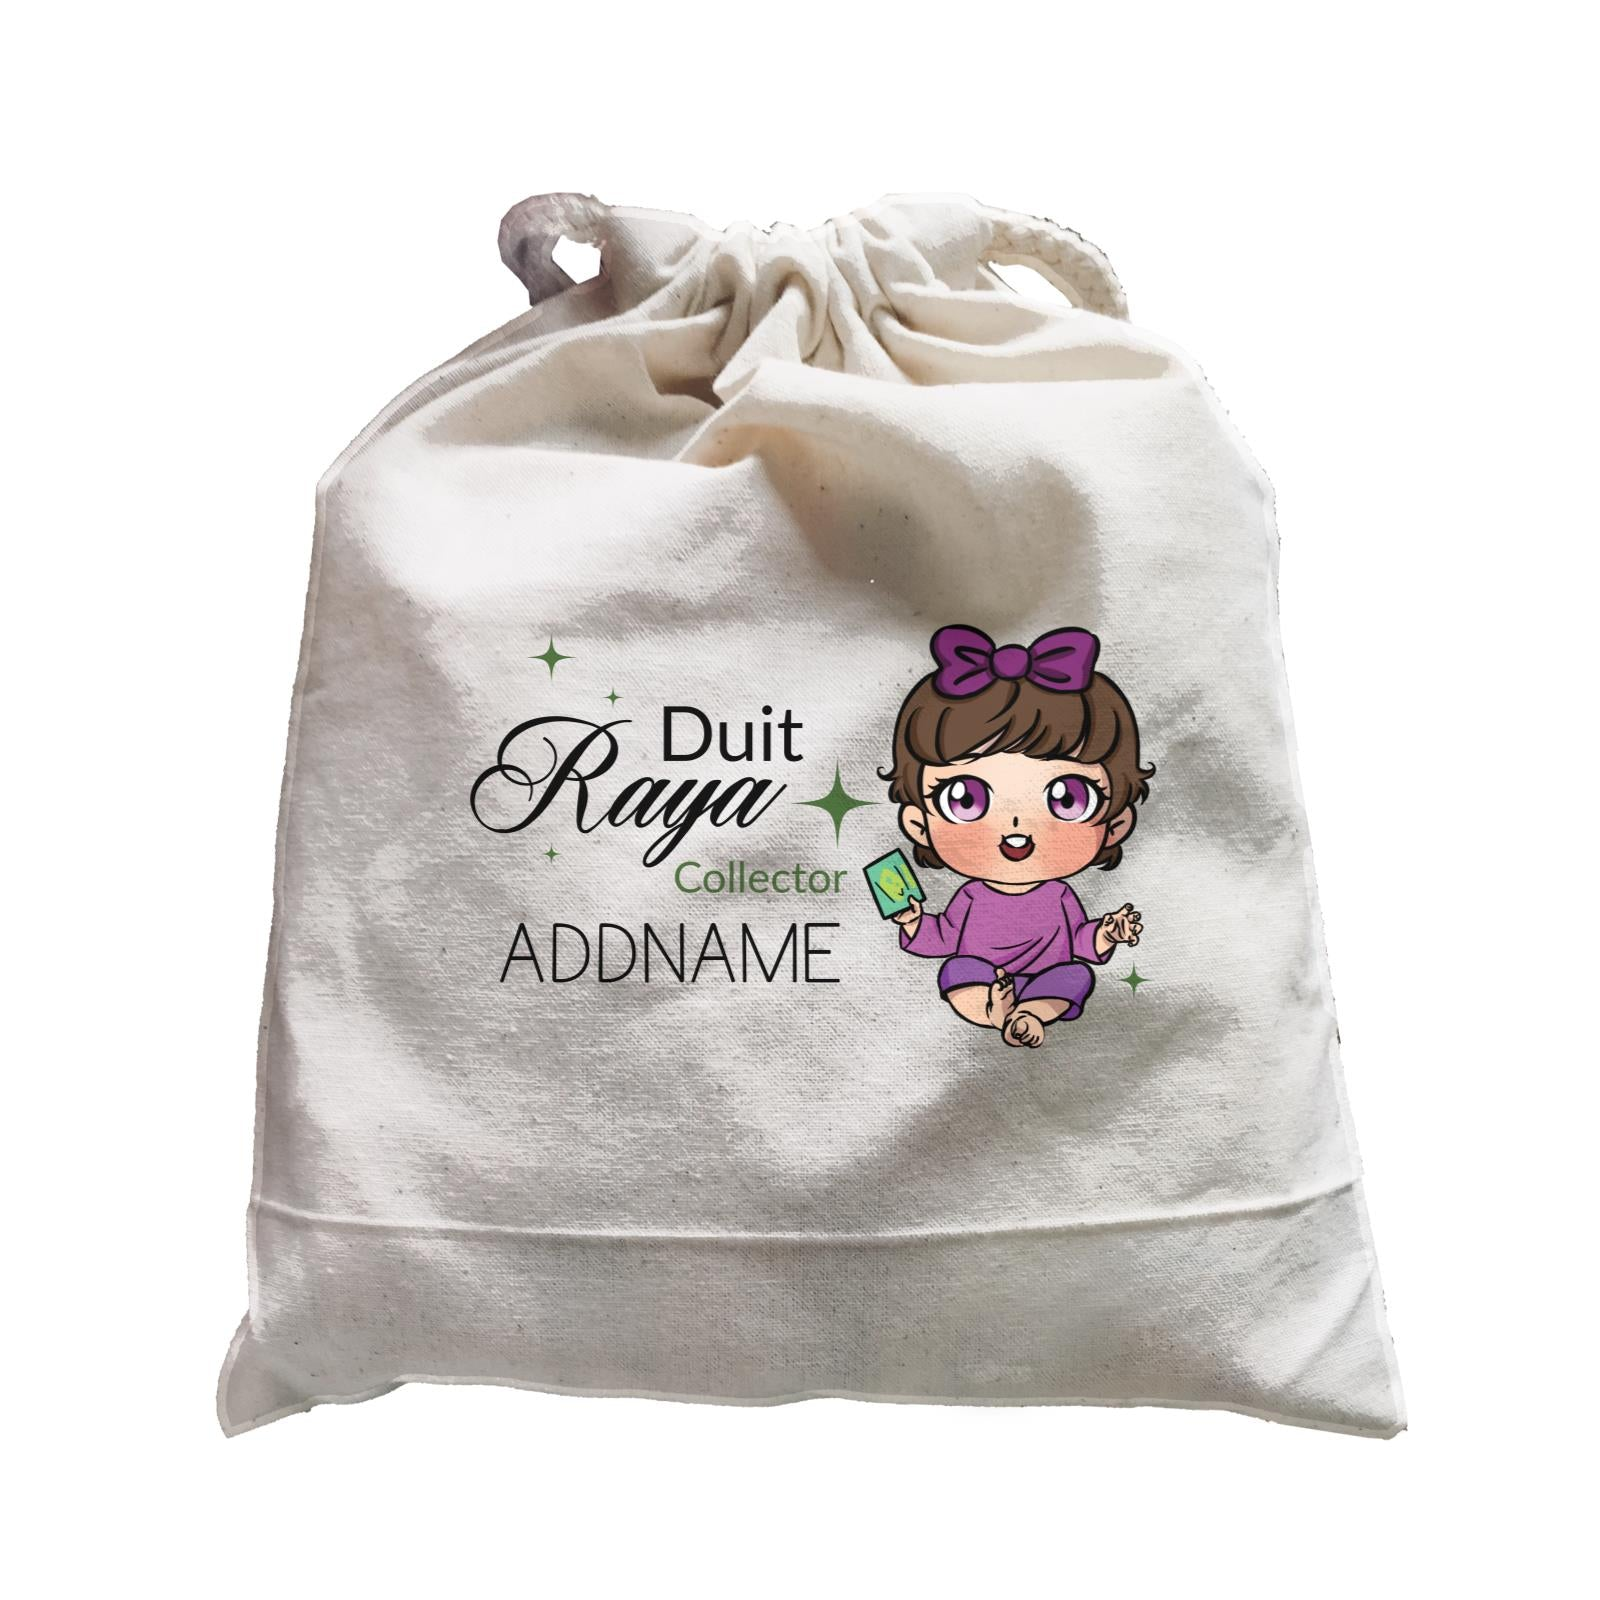 Raya Chibi Baby Baby Girl Duit Raya Collector Addname Accessories Satchel